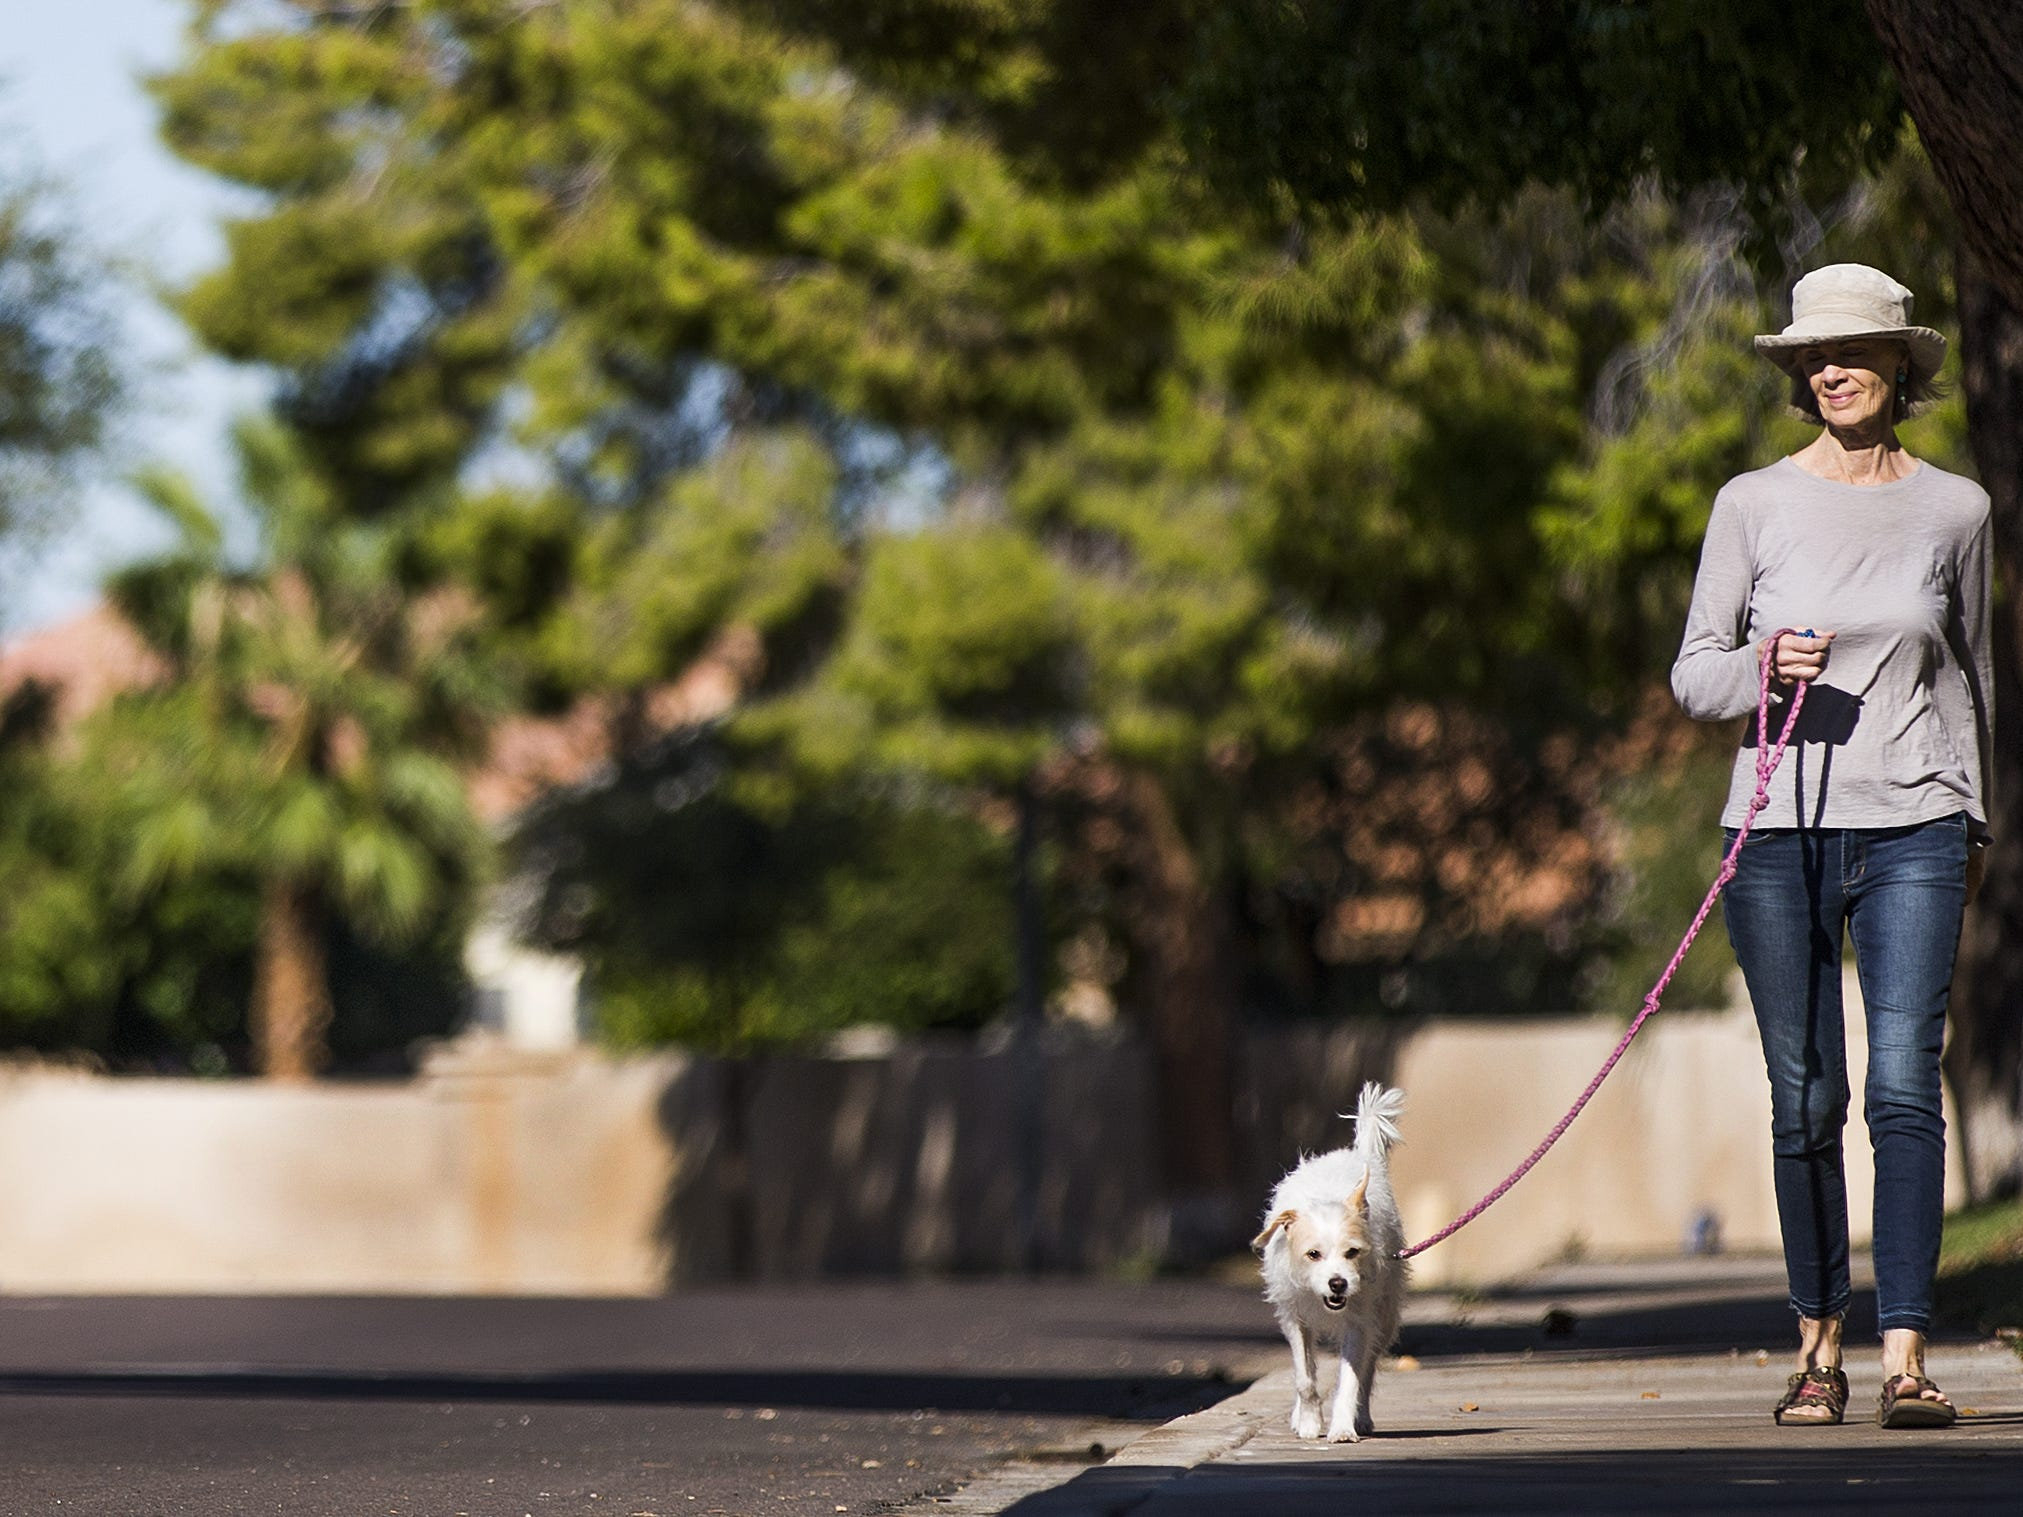 Michelle Gailiun walks her dog, Junie B, along Edgewater Drive in Peoria, where tree roots damaged walls enough that the HOA has told residents some of the trees may have to go.